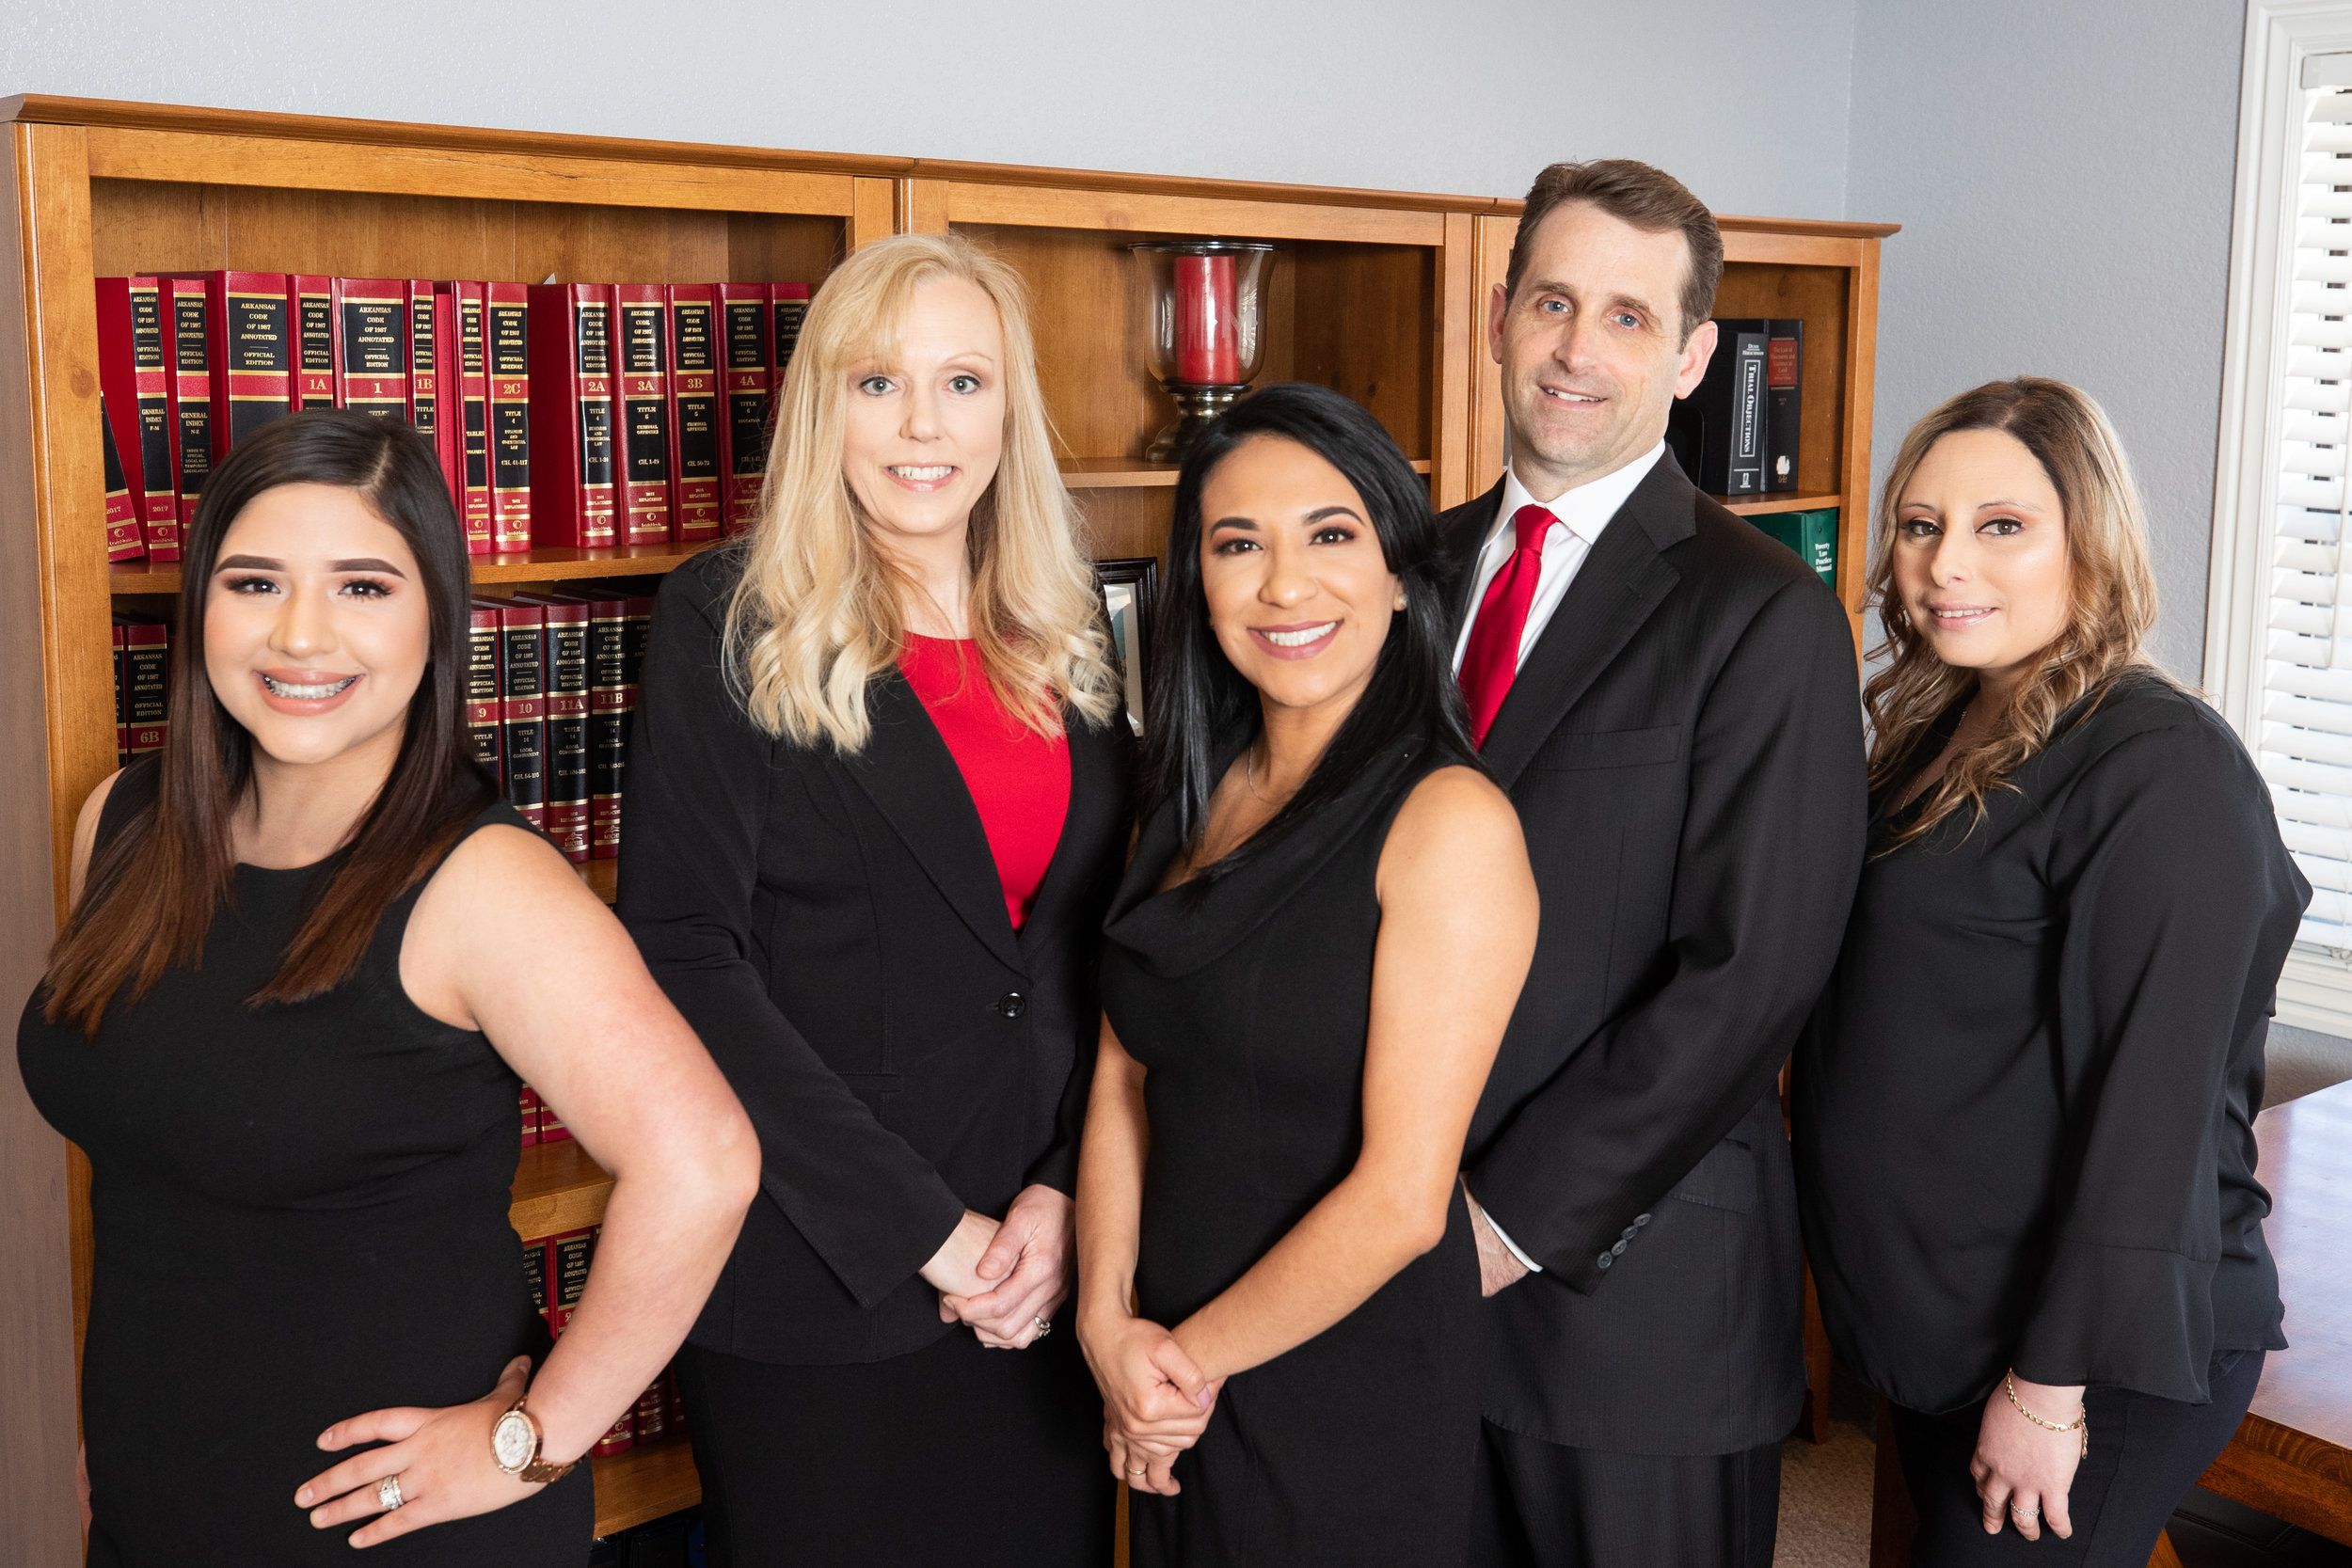 McManus Law Firm - Springdale Arkansas - 2019-39.jpg